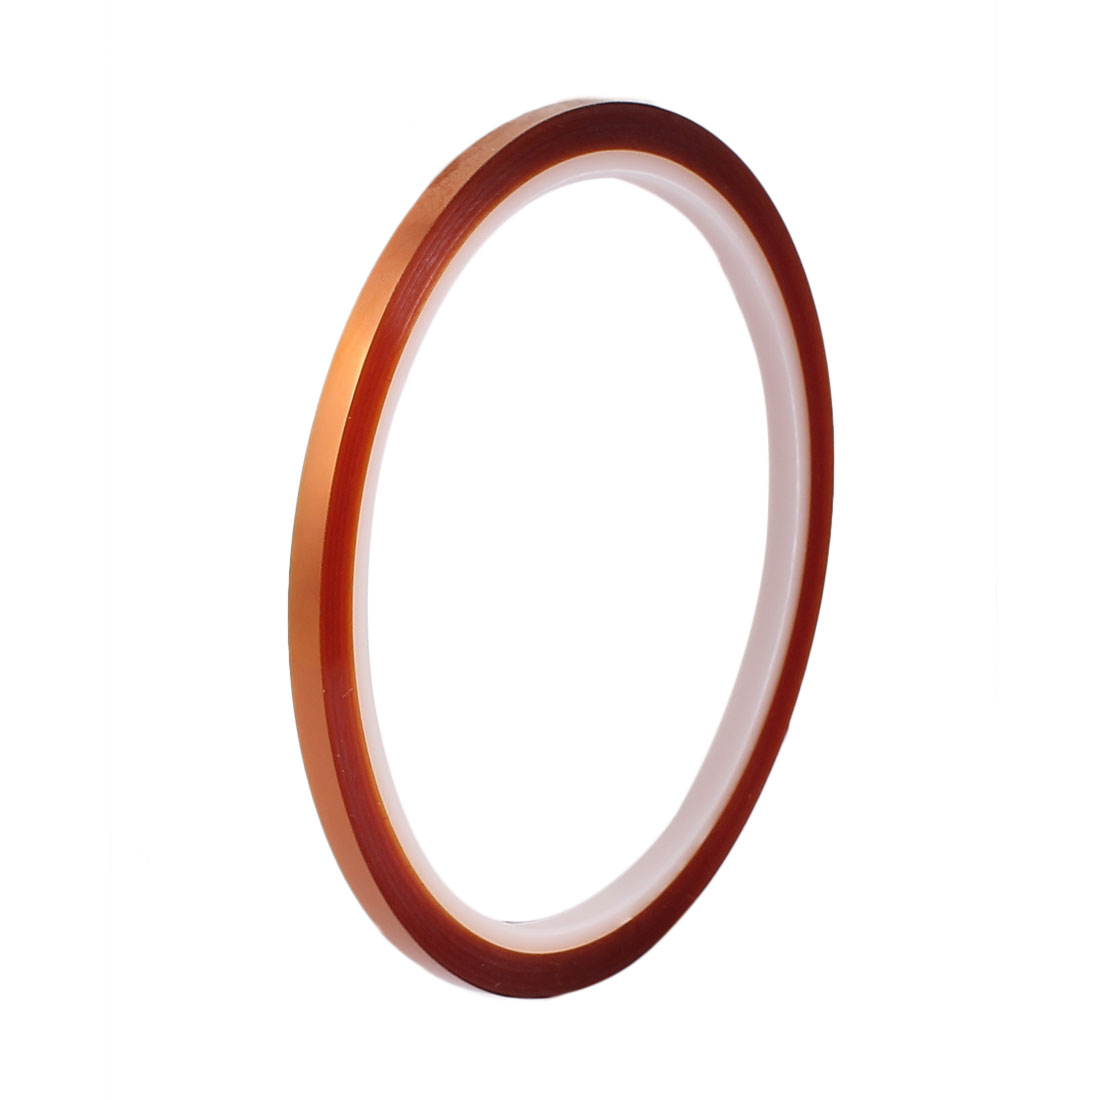 4mm Width 30M Length High Temperature Heat Resistant Polyimide Tape - image 1 of 1